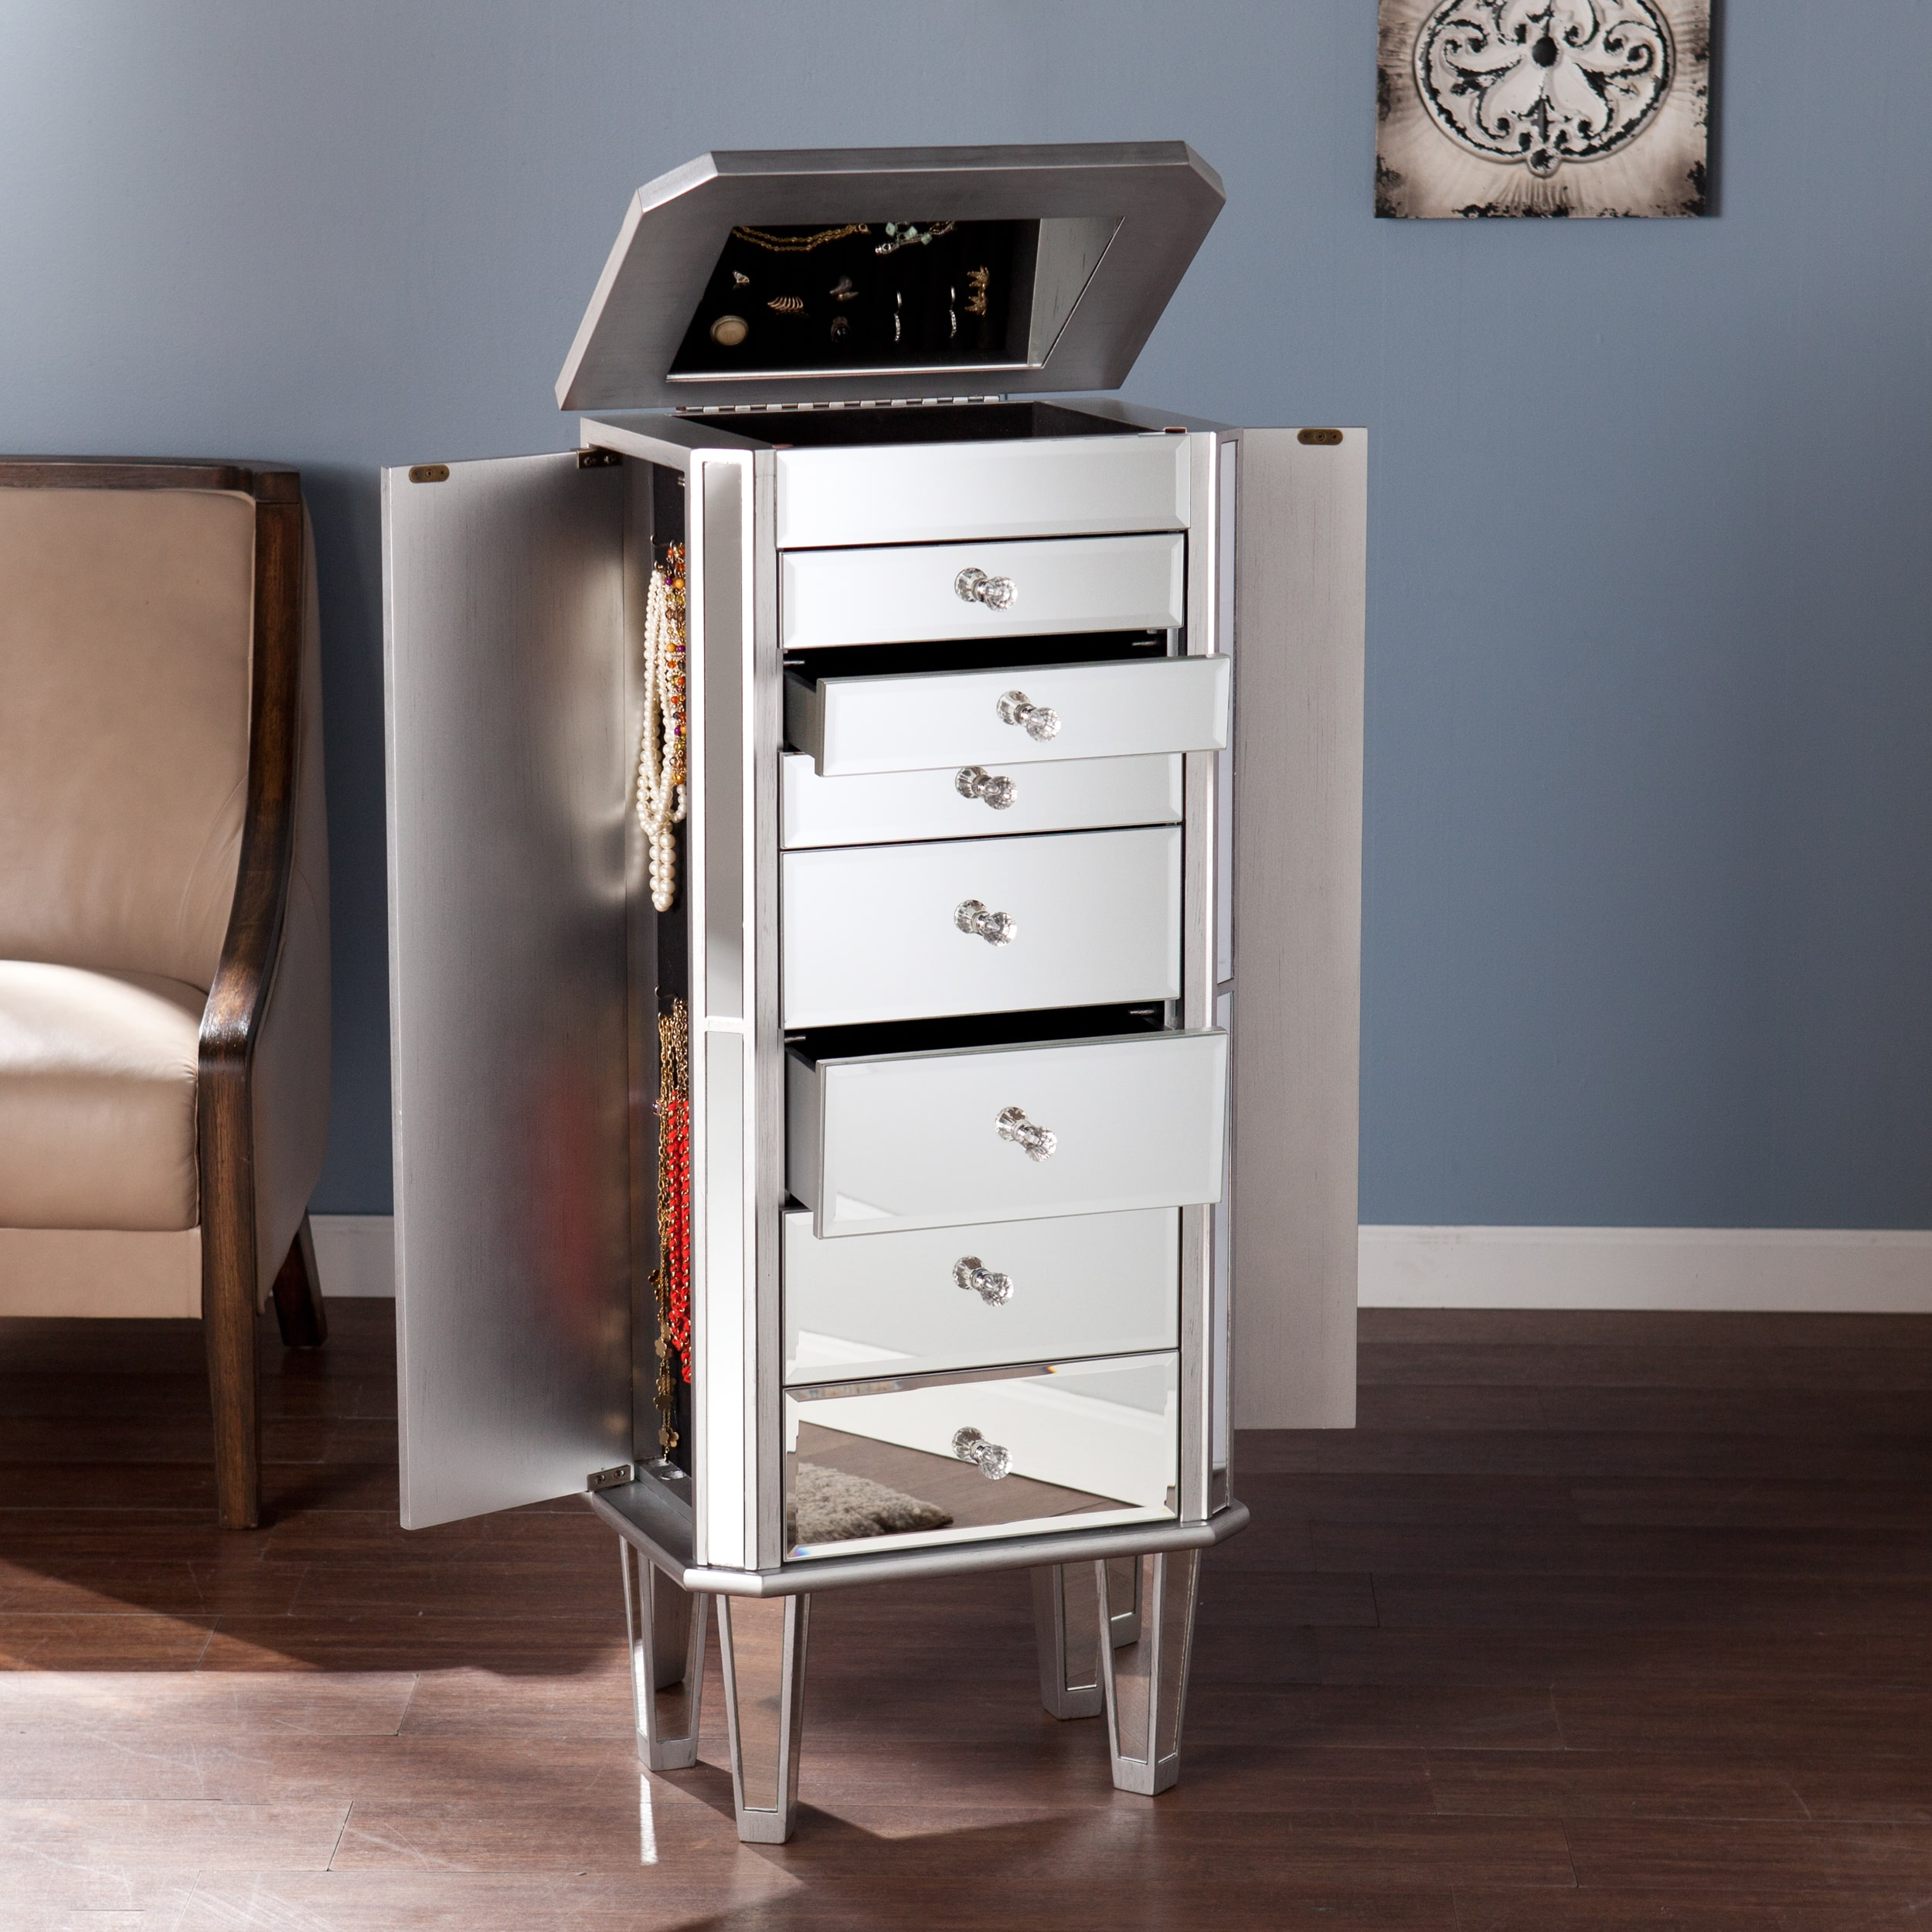 "Harper Blvd  Millicent Mirrored Jewelry Armoire - 42.25""h x 18""w x 13.5""d"